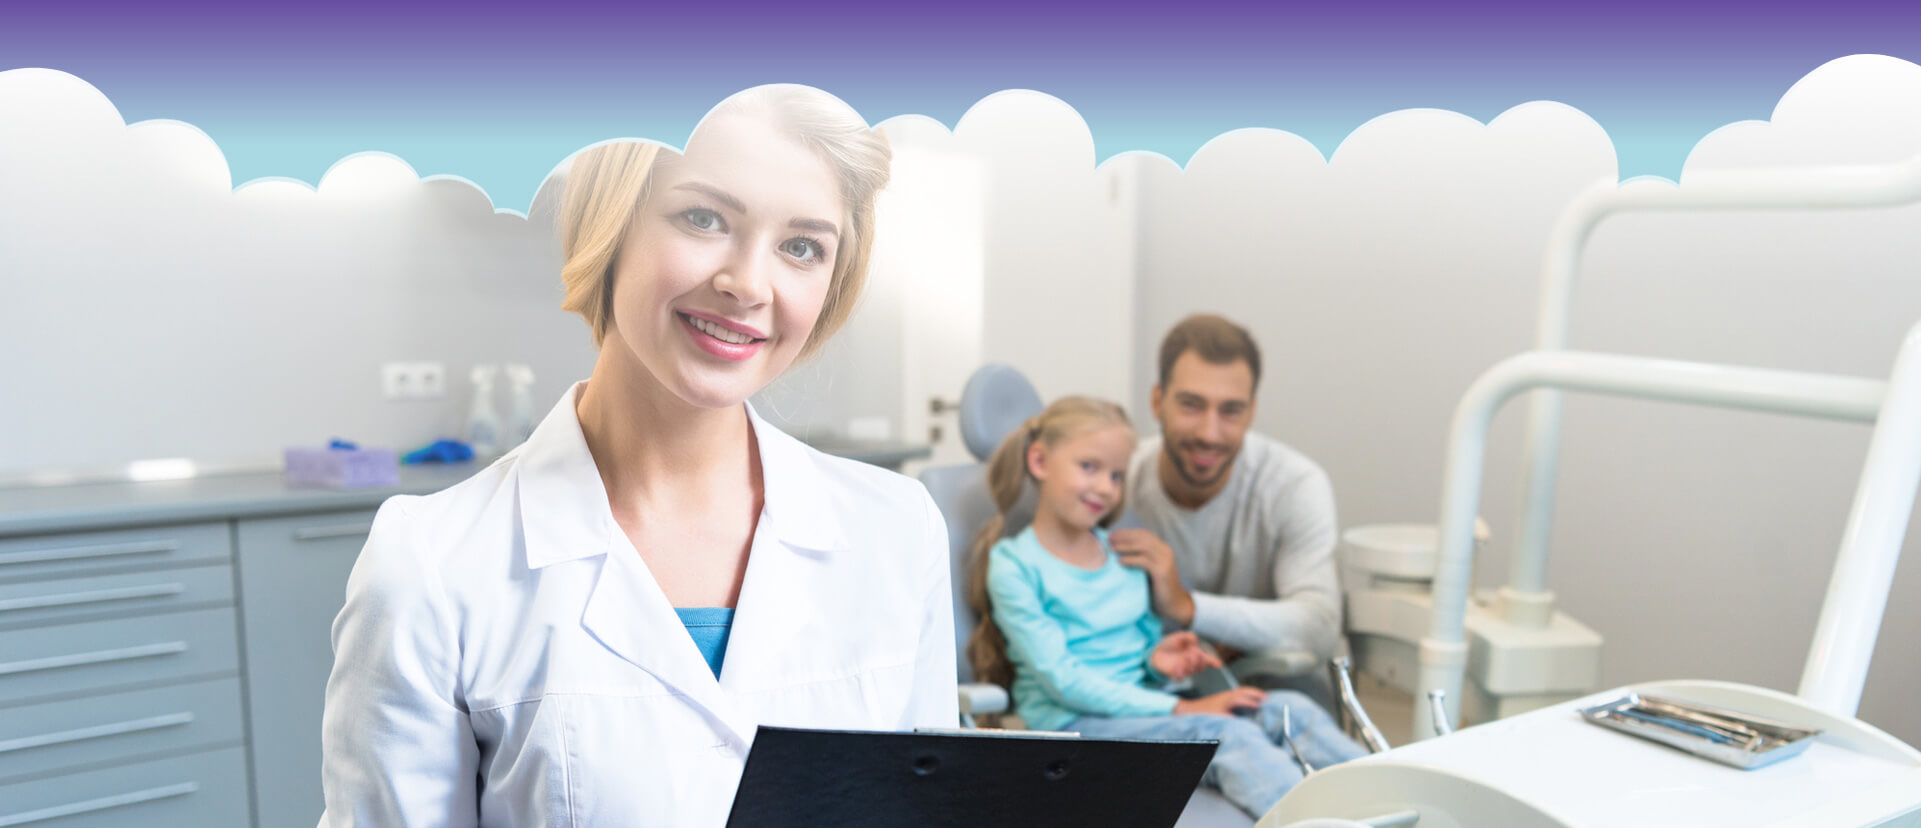 Dental assistant smiling at the camera